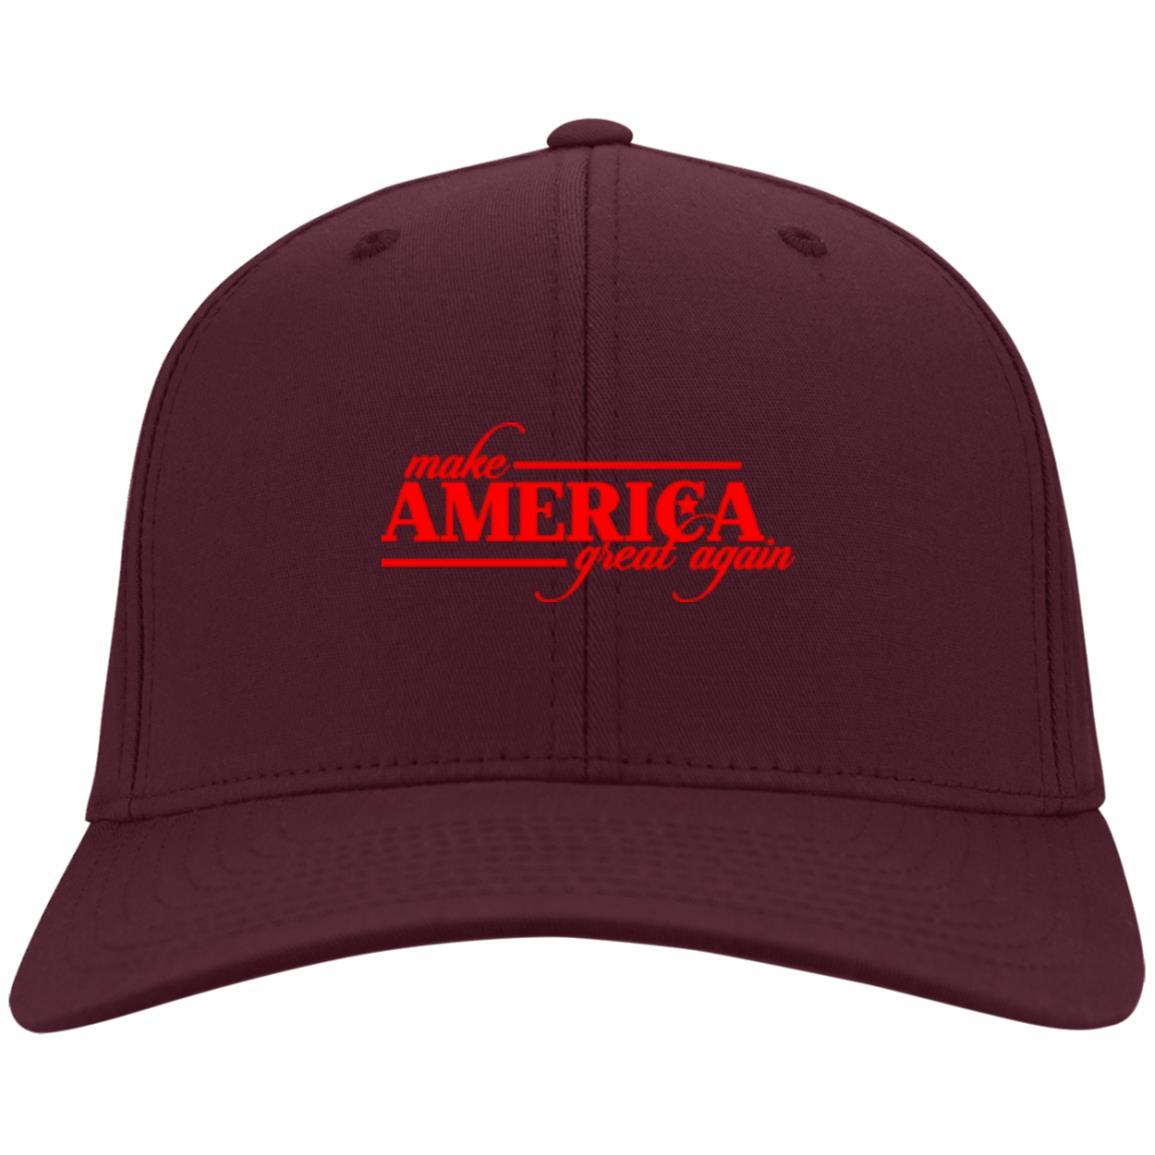 Make America Great Again - Port & Co. Twill Cap Maroon